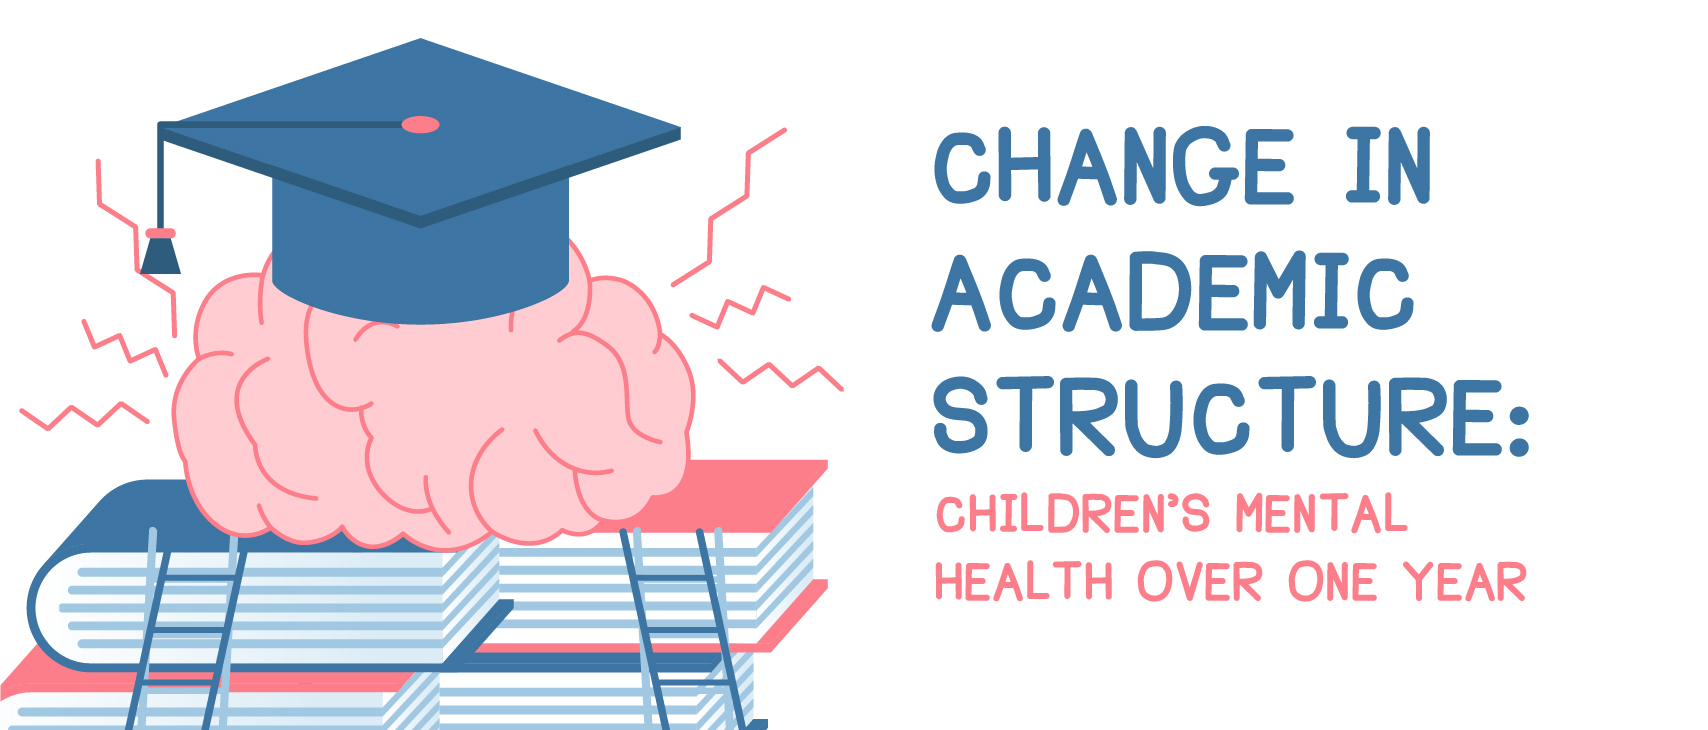 Change in academic structure: Children's mental health over one year